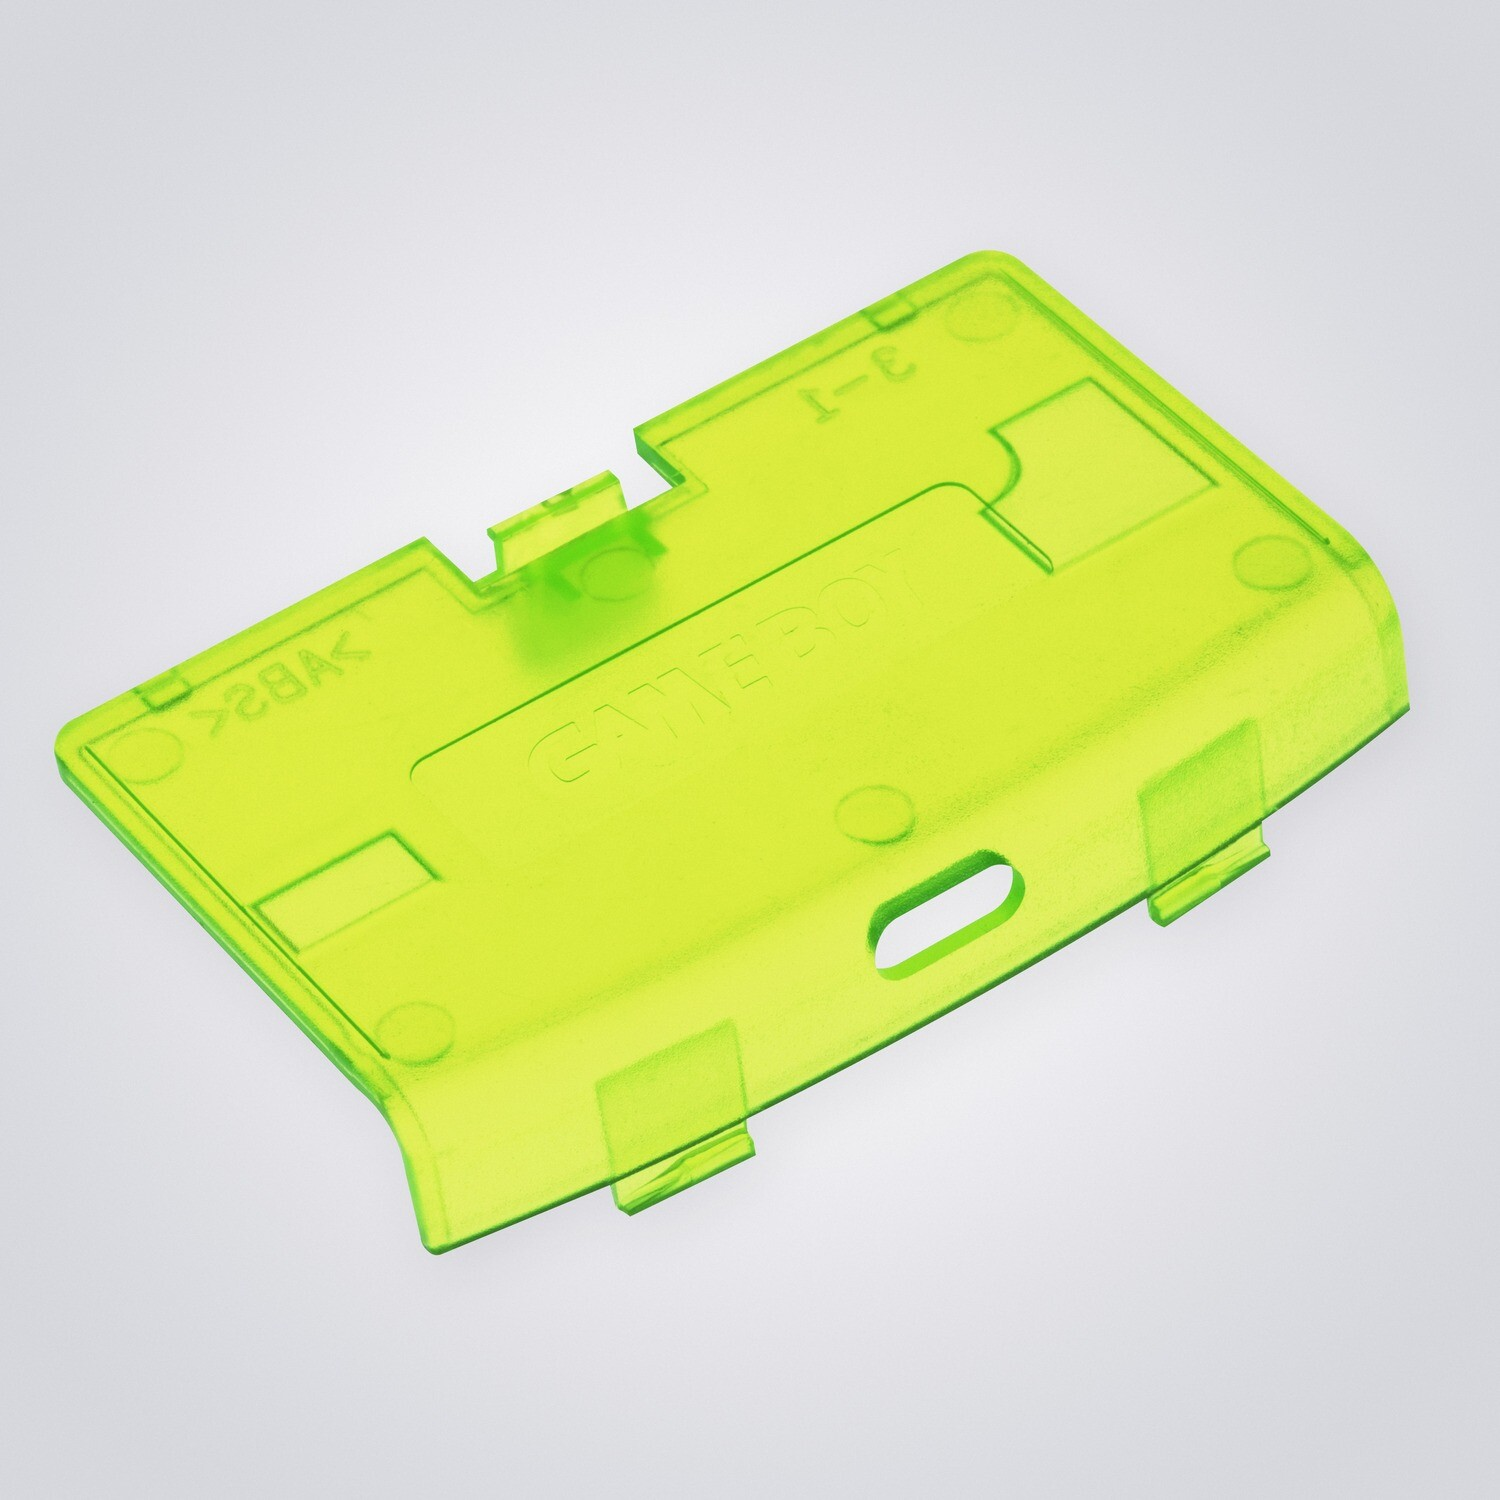 Game Boy Advance USB-C Battery Cover (Clear Yellow)